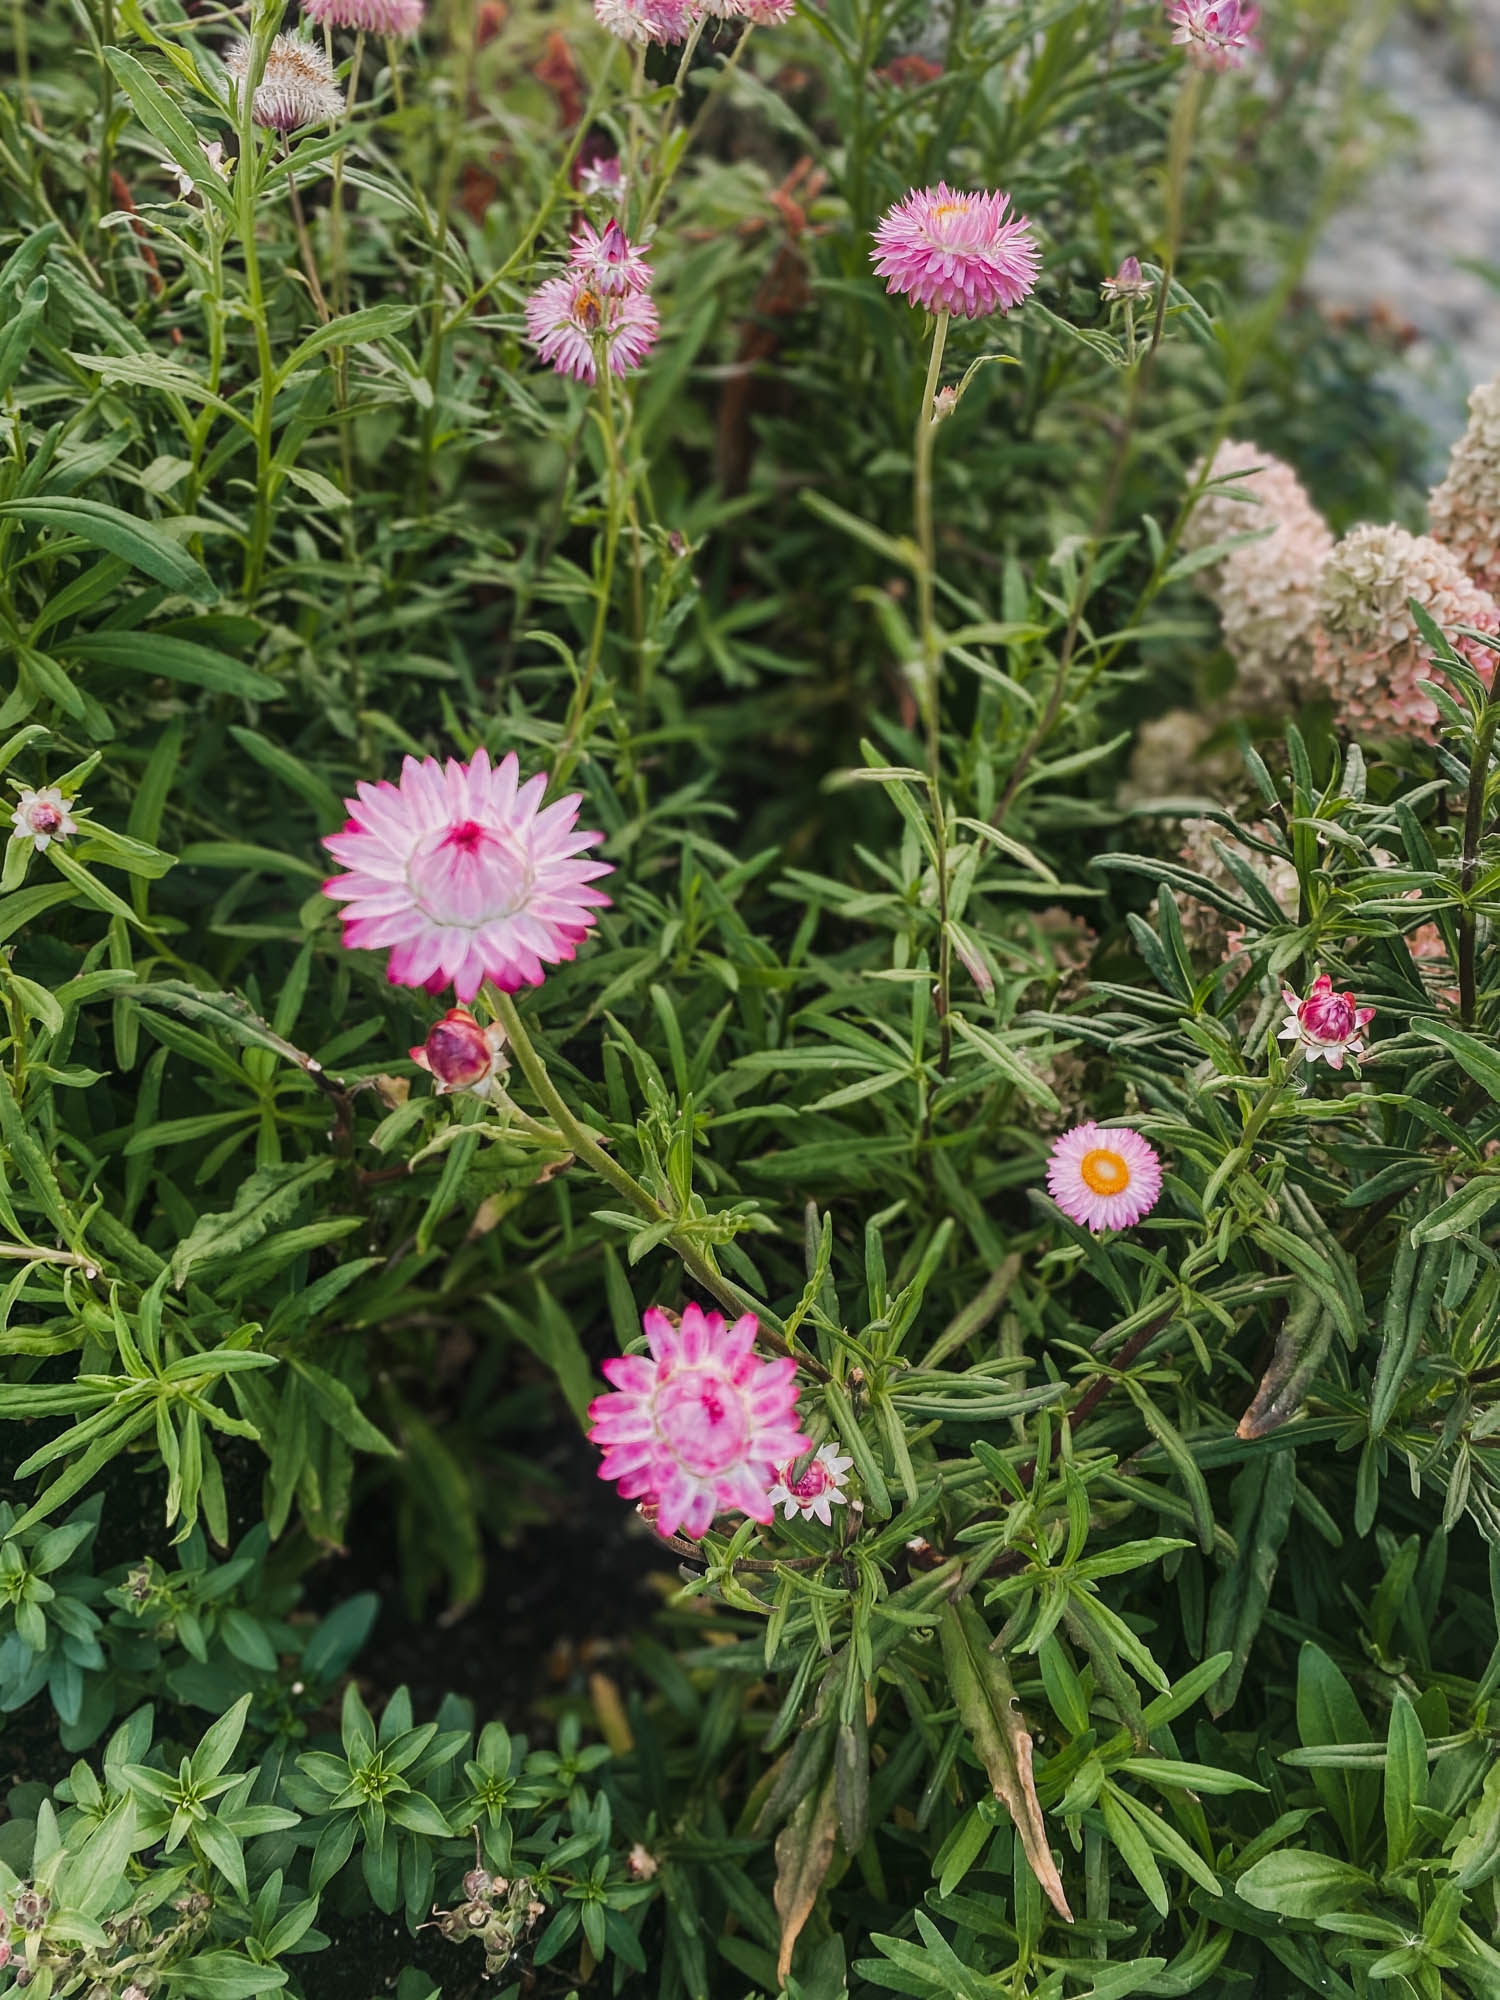 Strawflowers for cut flowers and drying